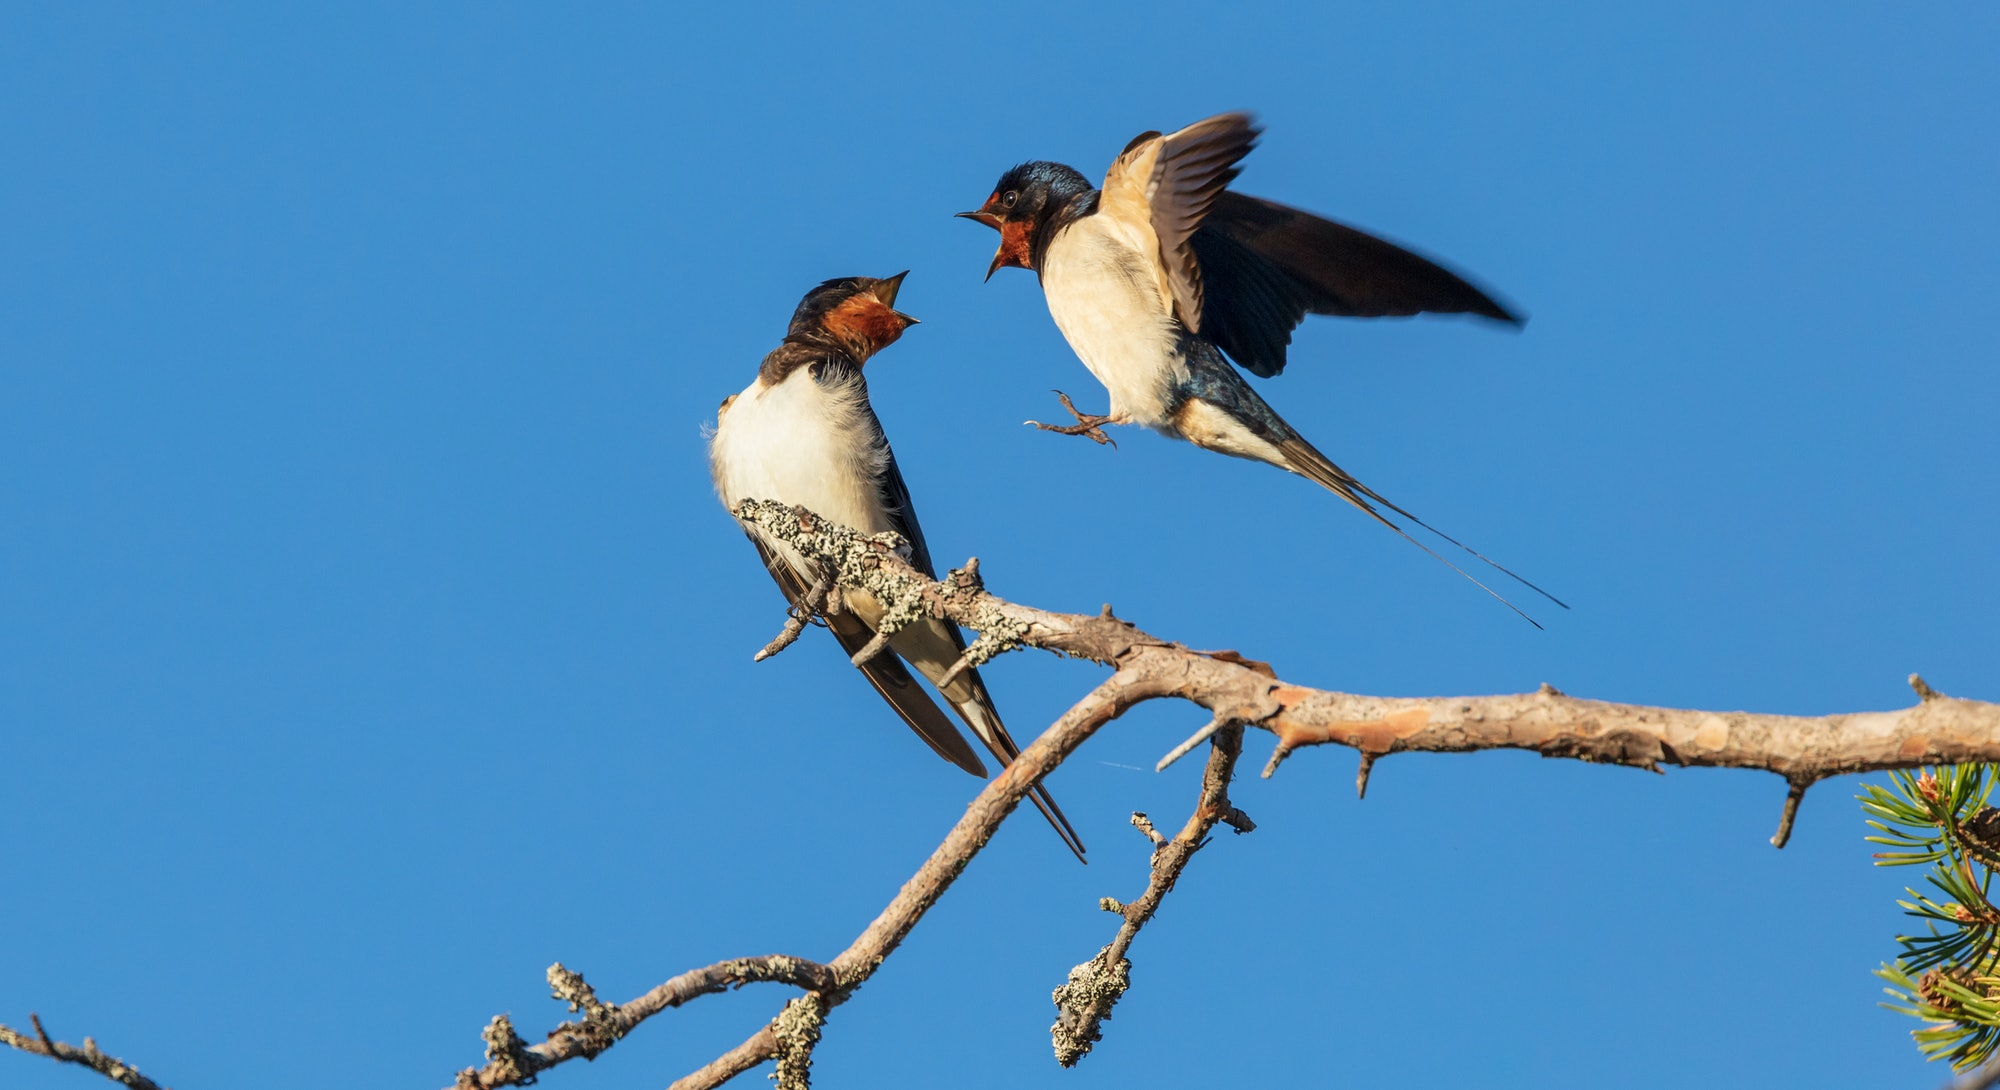 Barn swallow (Hirundo rustica) couple in courtship display.